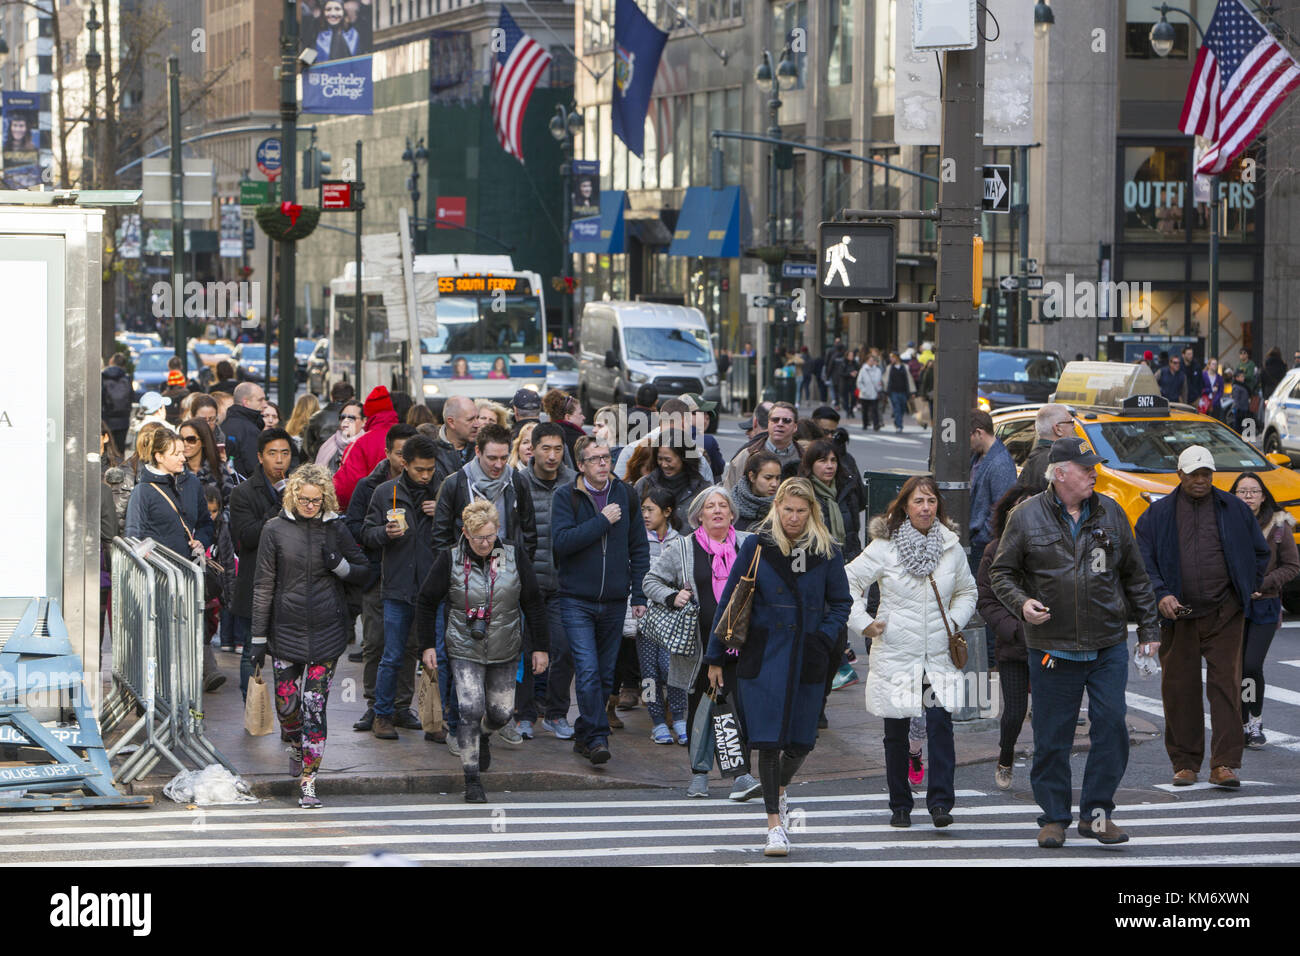 Crowds of tourists and shoppers at the corner of 42nd Street and 5th Avenue during the Black Friday Thanksgiving - Stock Image